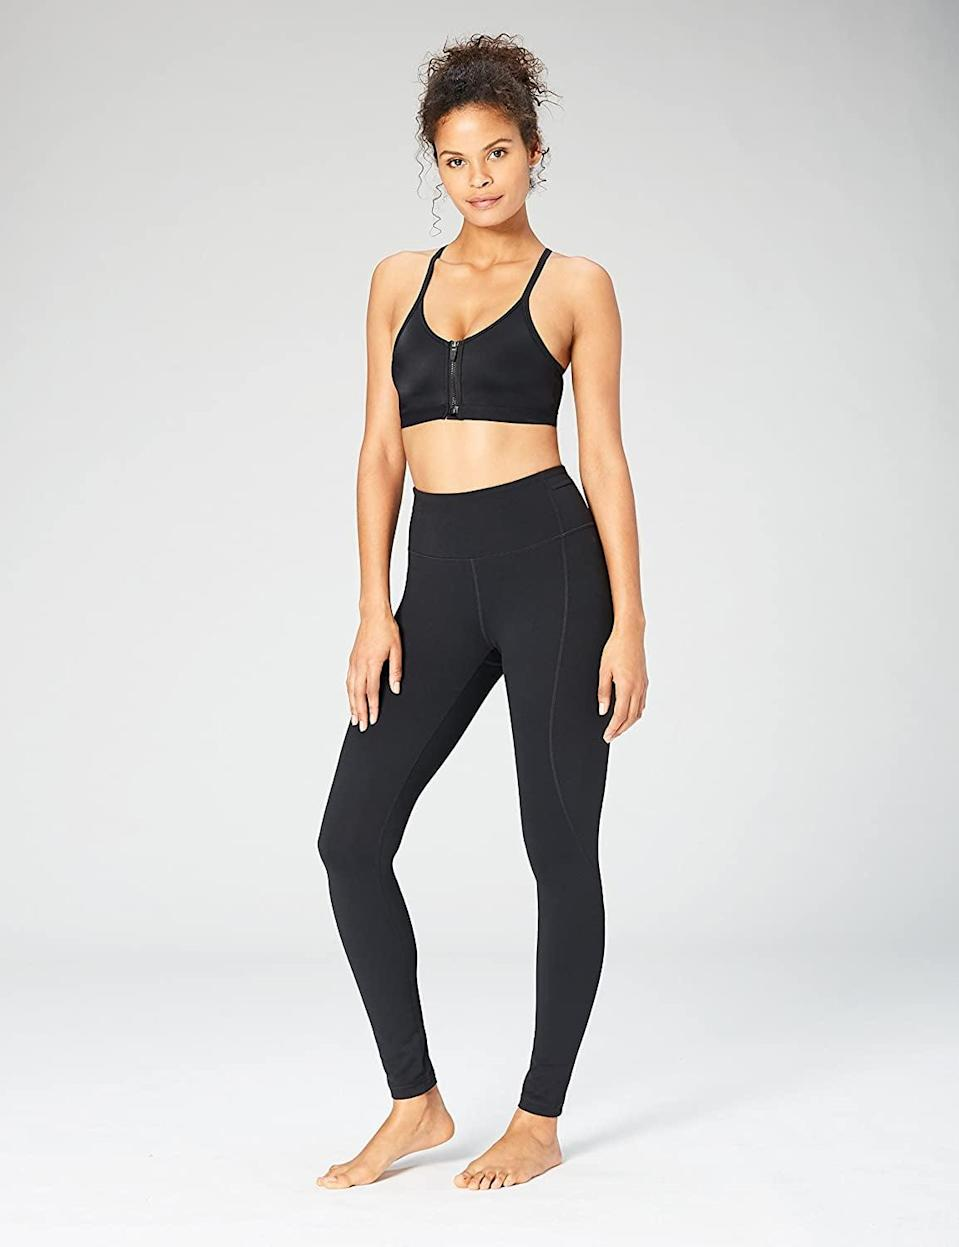 <p>Available in extended sizing, customers praise the <span>Core 10 Women's Build Your Own Yoga Pant Full-Length Legging</span> ($44) because they're comfortable and warm yet breathable.</p>